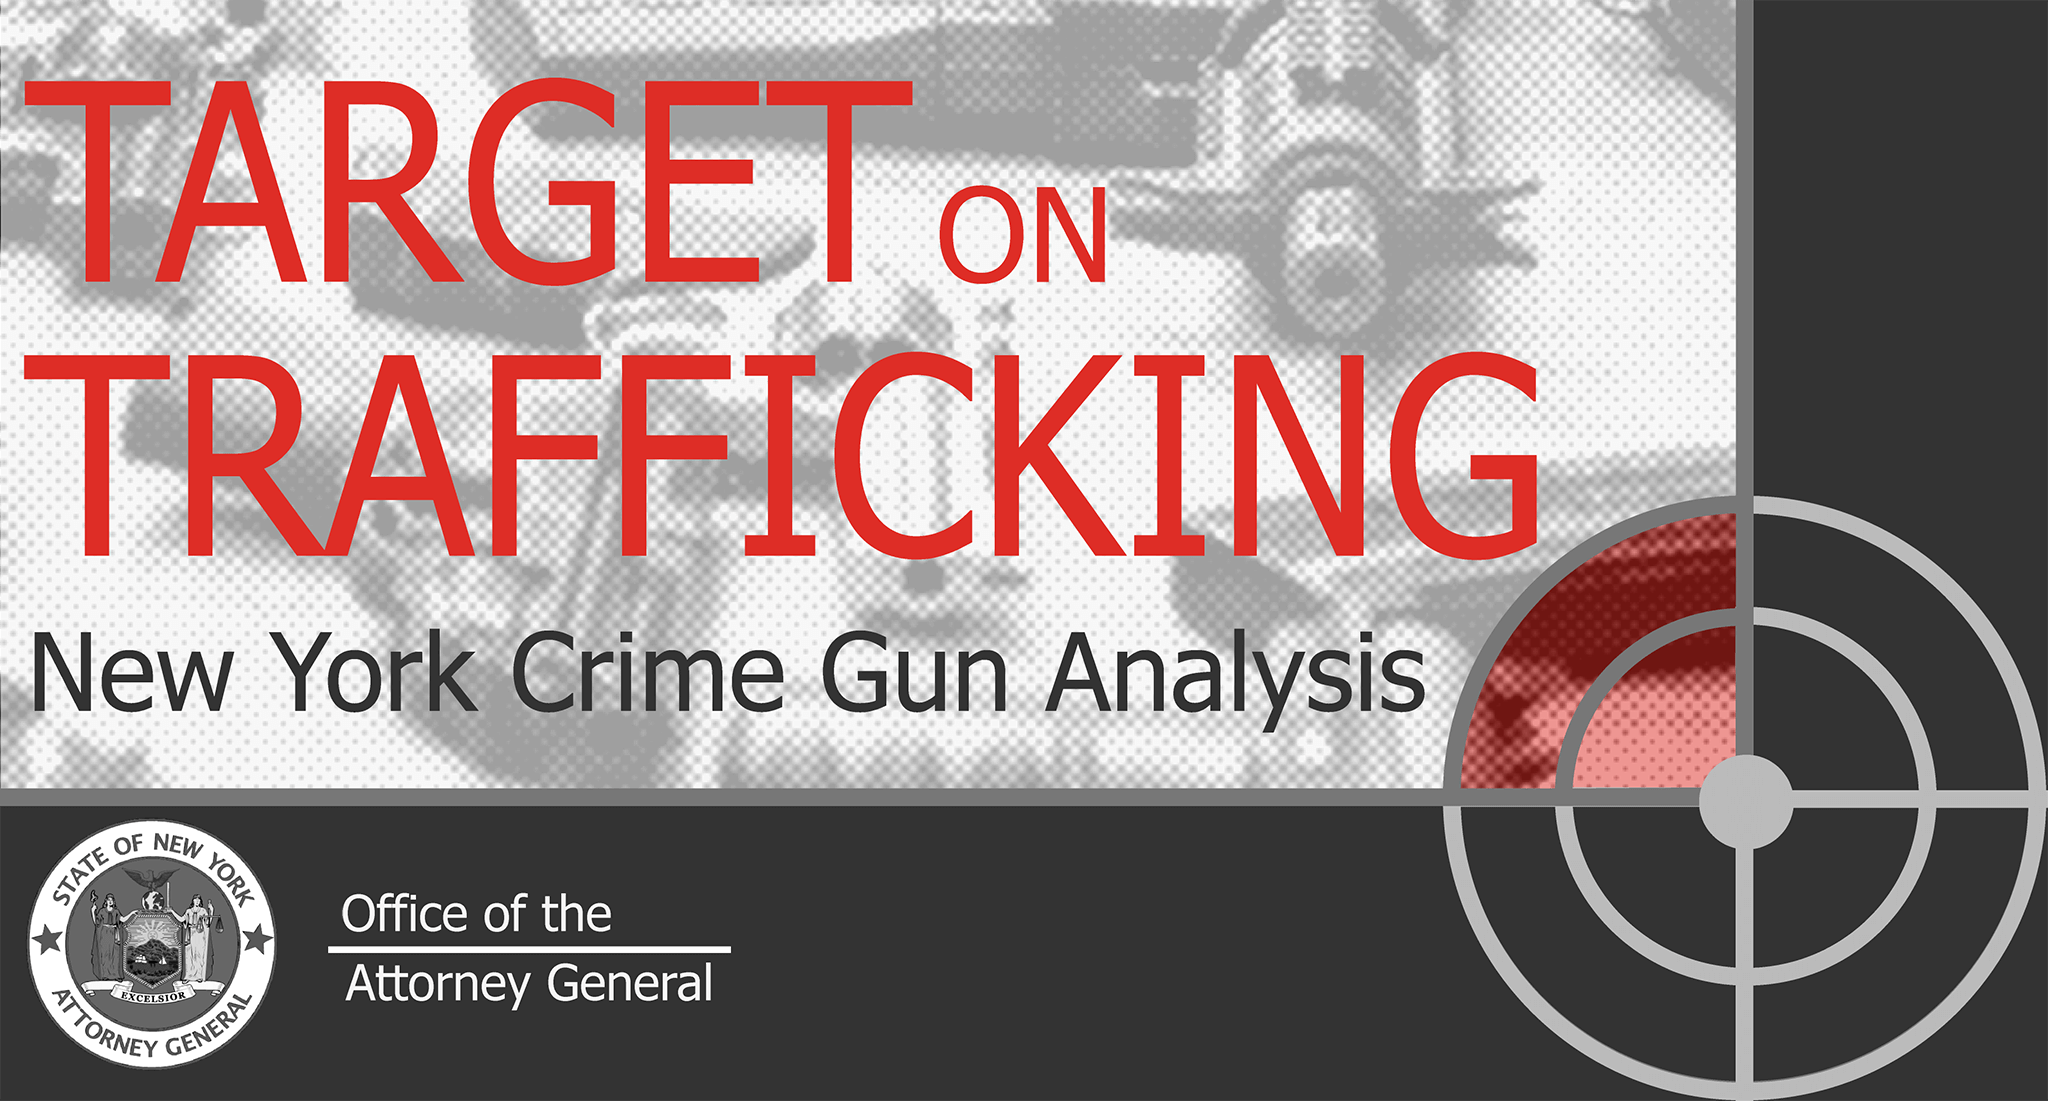 Target on Trafficking: New York Crime Gun Analysis. New York Attorney General